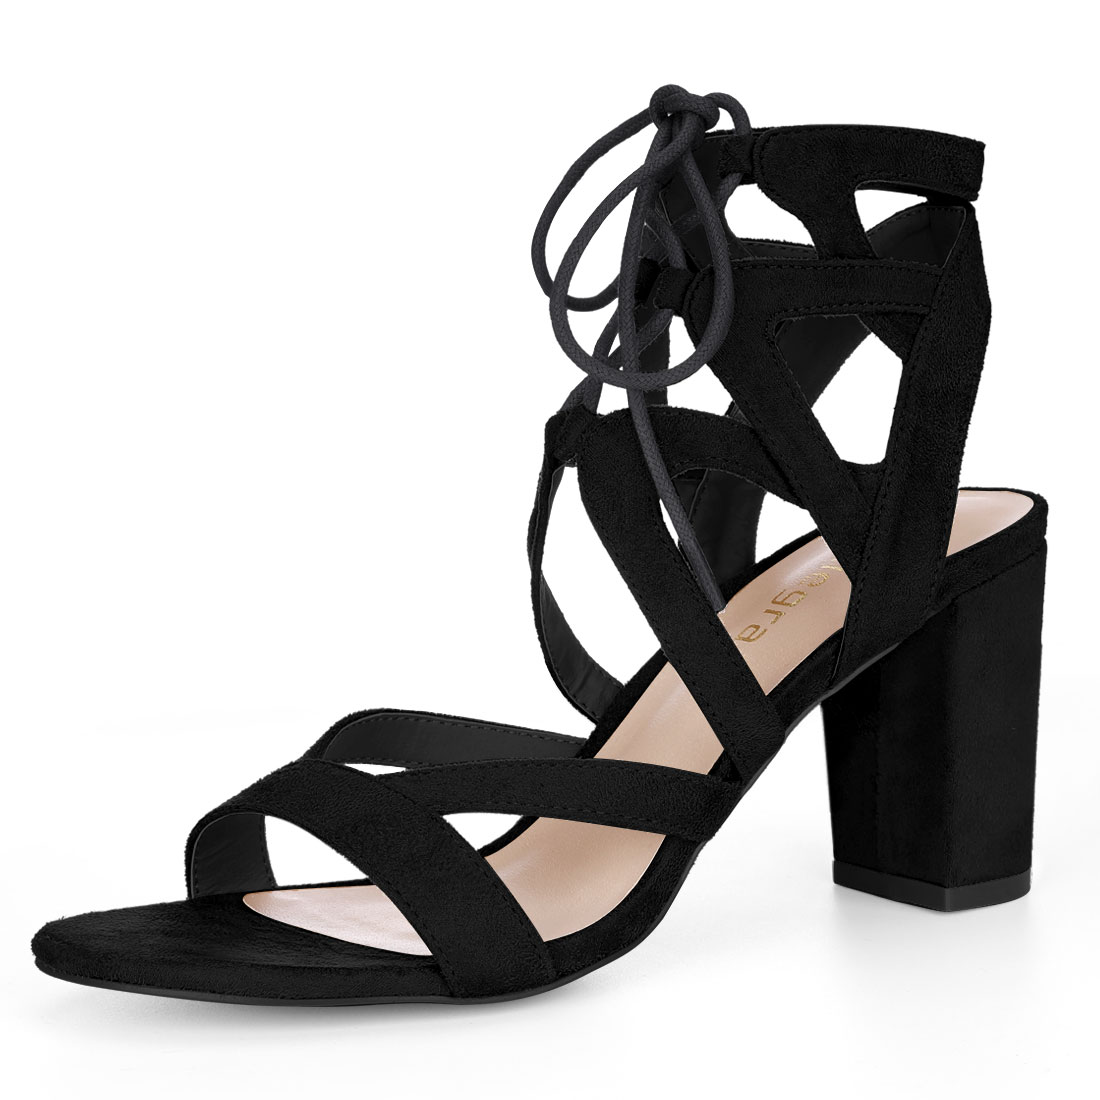 Allegra K Women Cutout Strappy Chunky Heel Lace-Up Sandals Black US 10